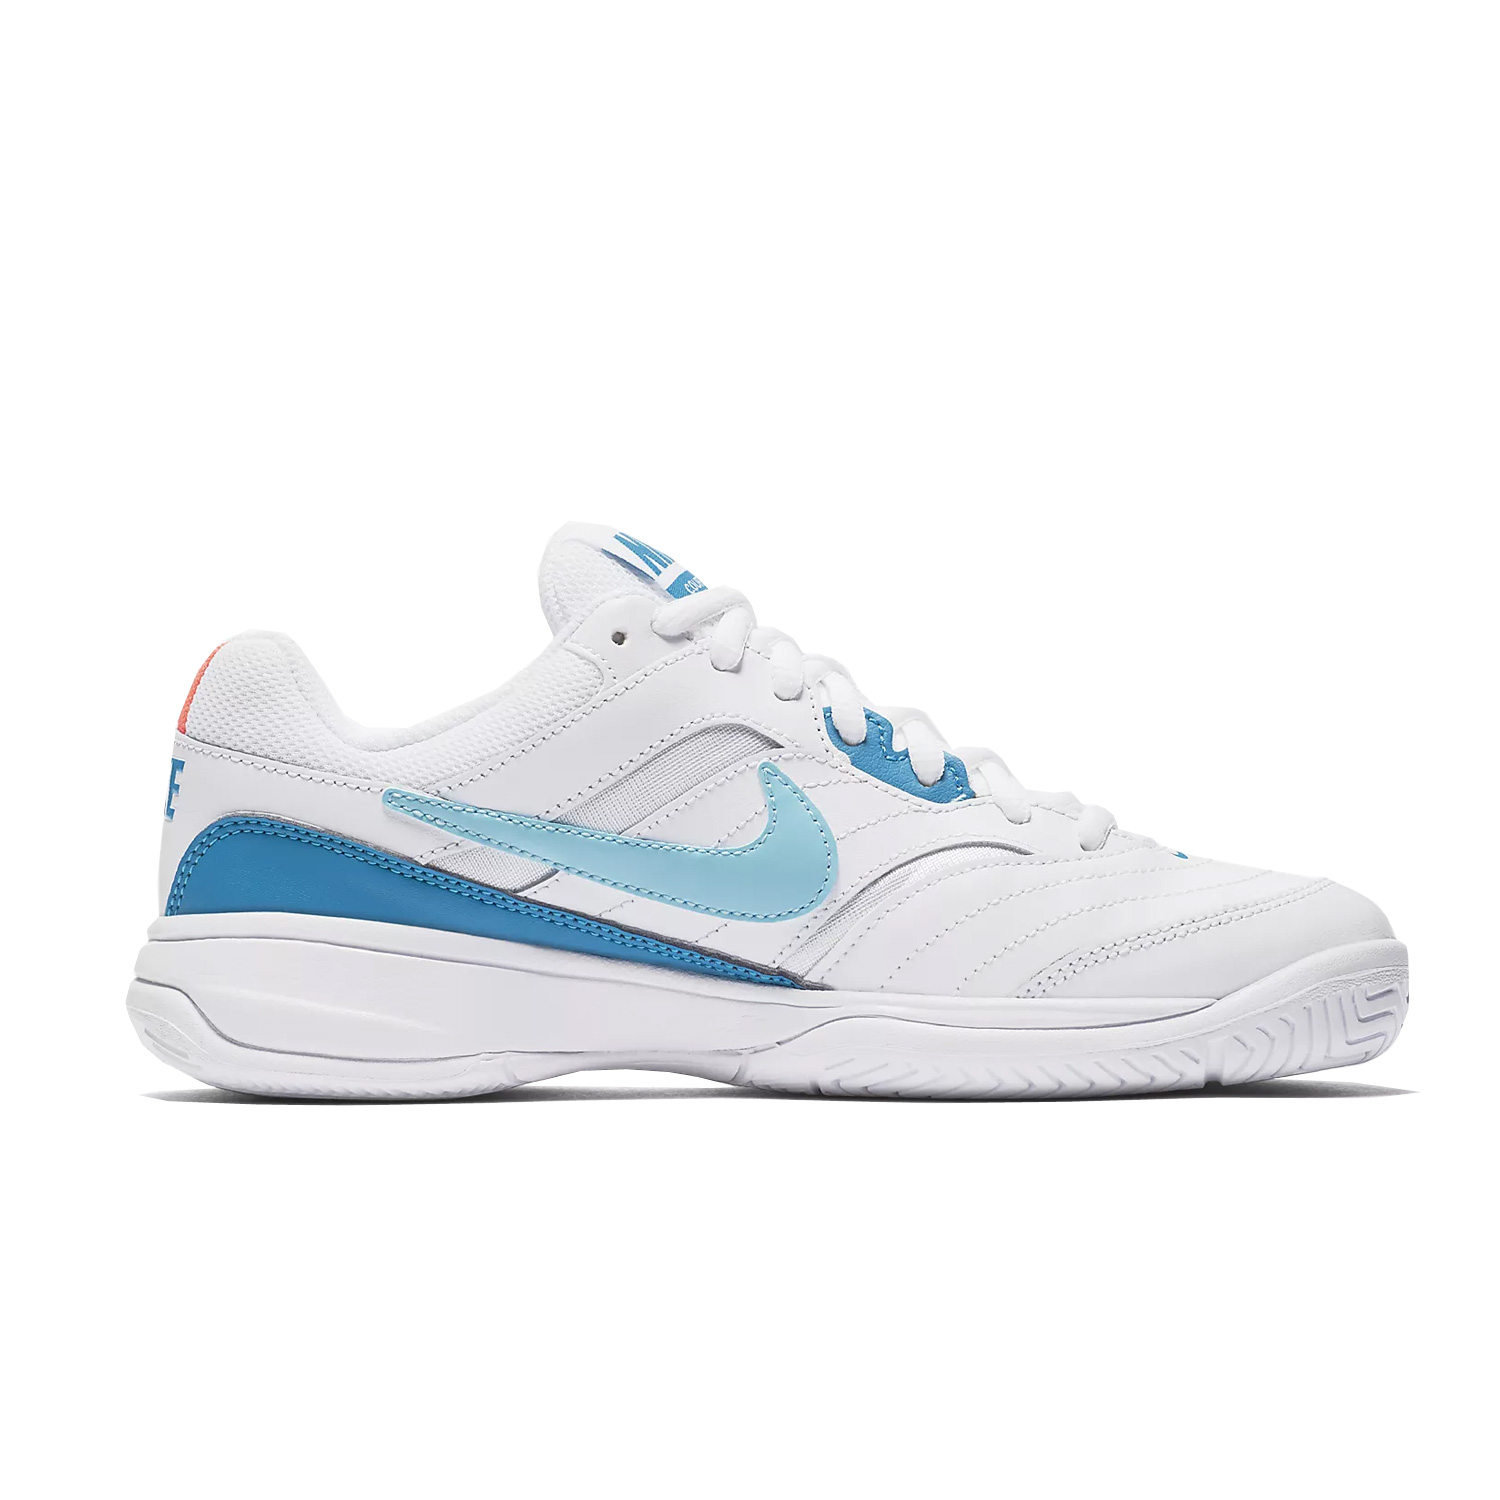 free shipping b2351 adabd Nike Womens Court Lite Tennis Shoe White Turquoise